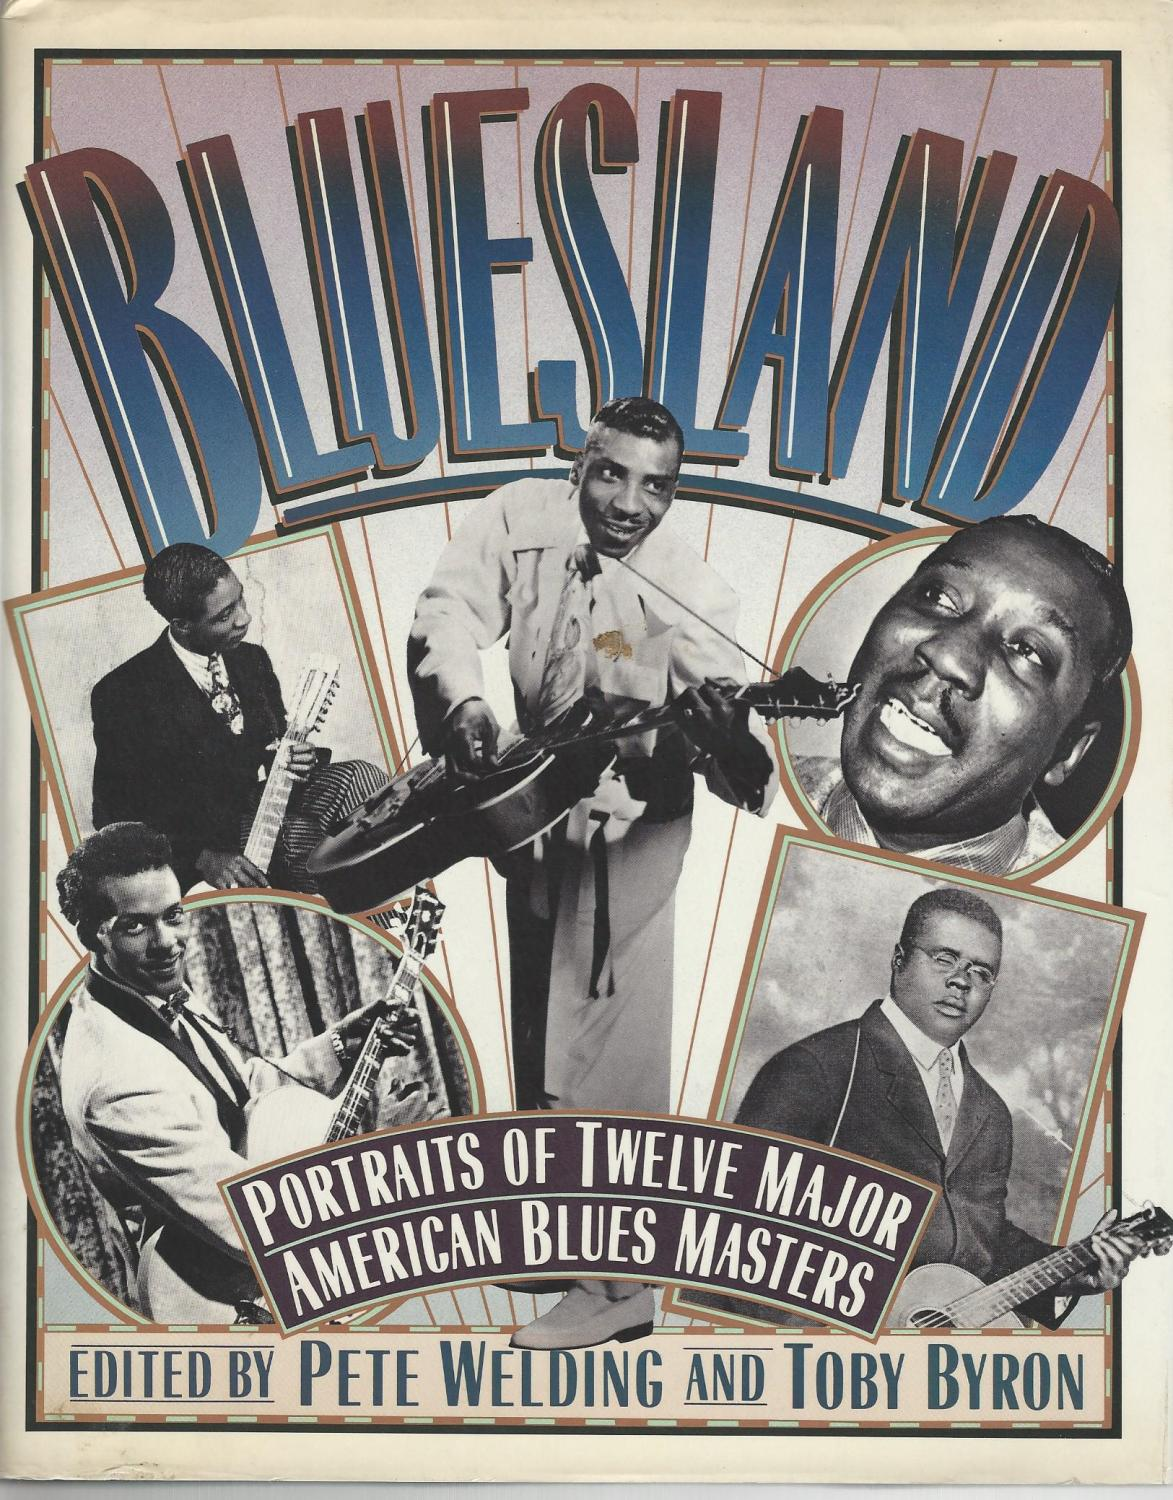 Bluesland : Portraits of Twelve Major American Blues Masters - Welding, Pete